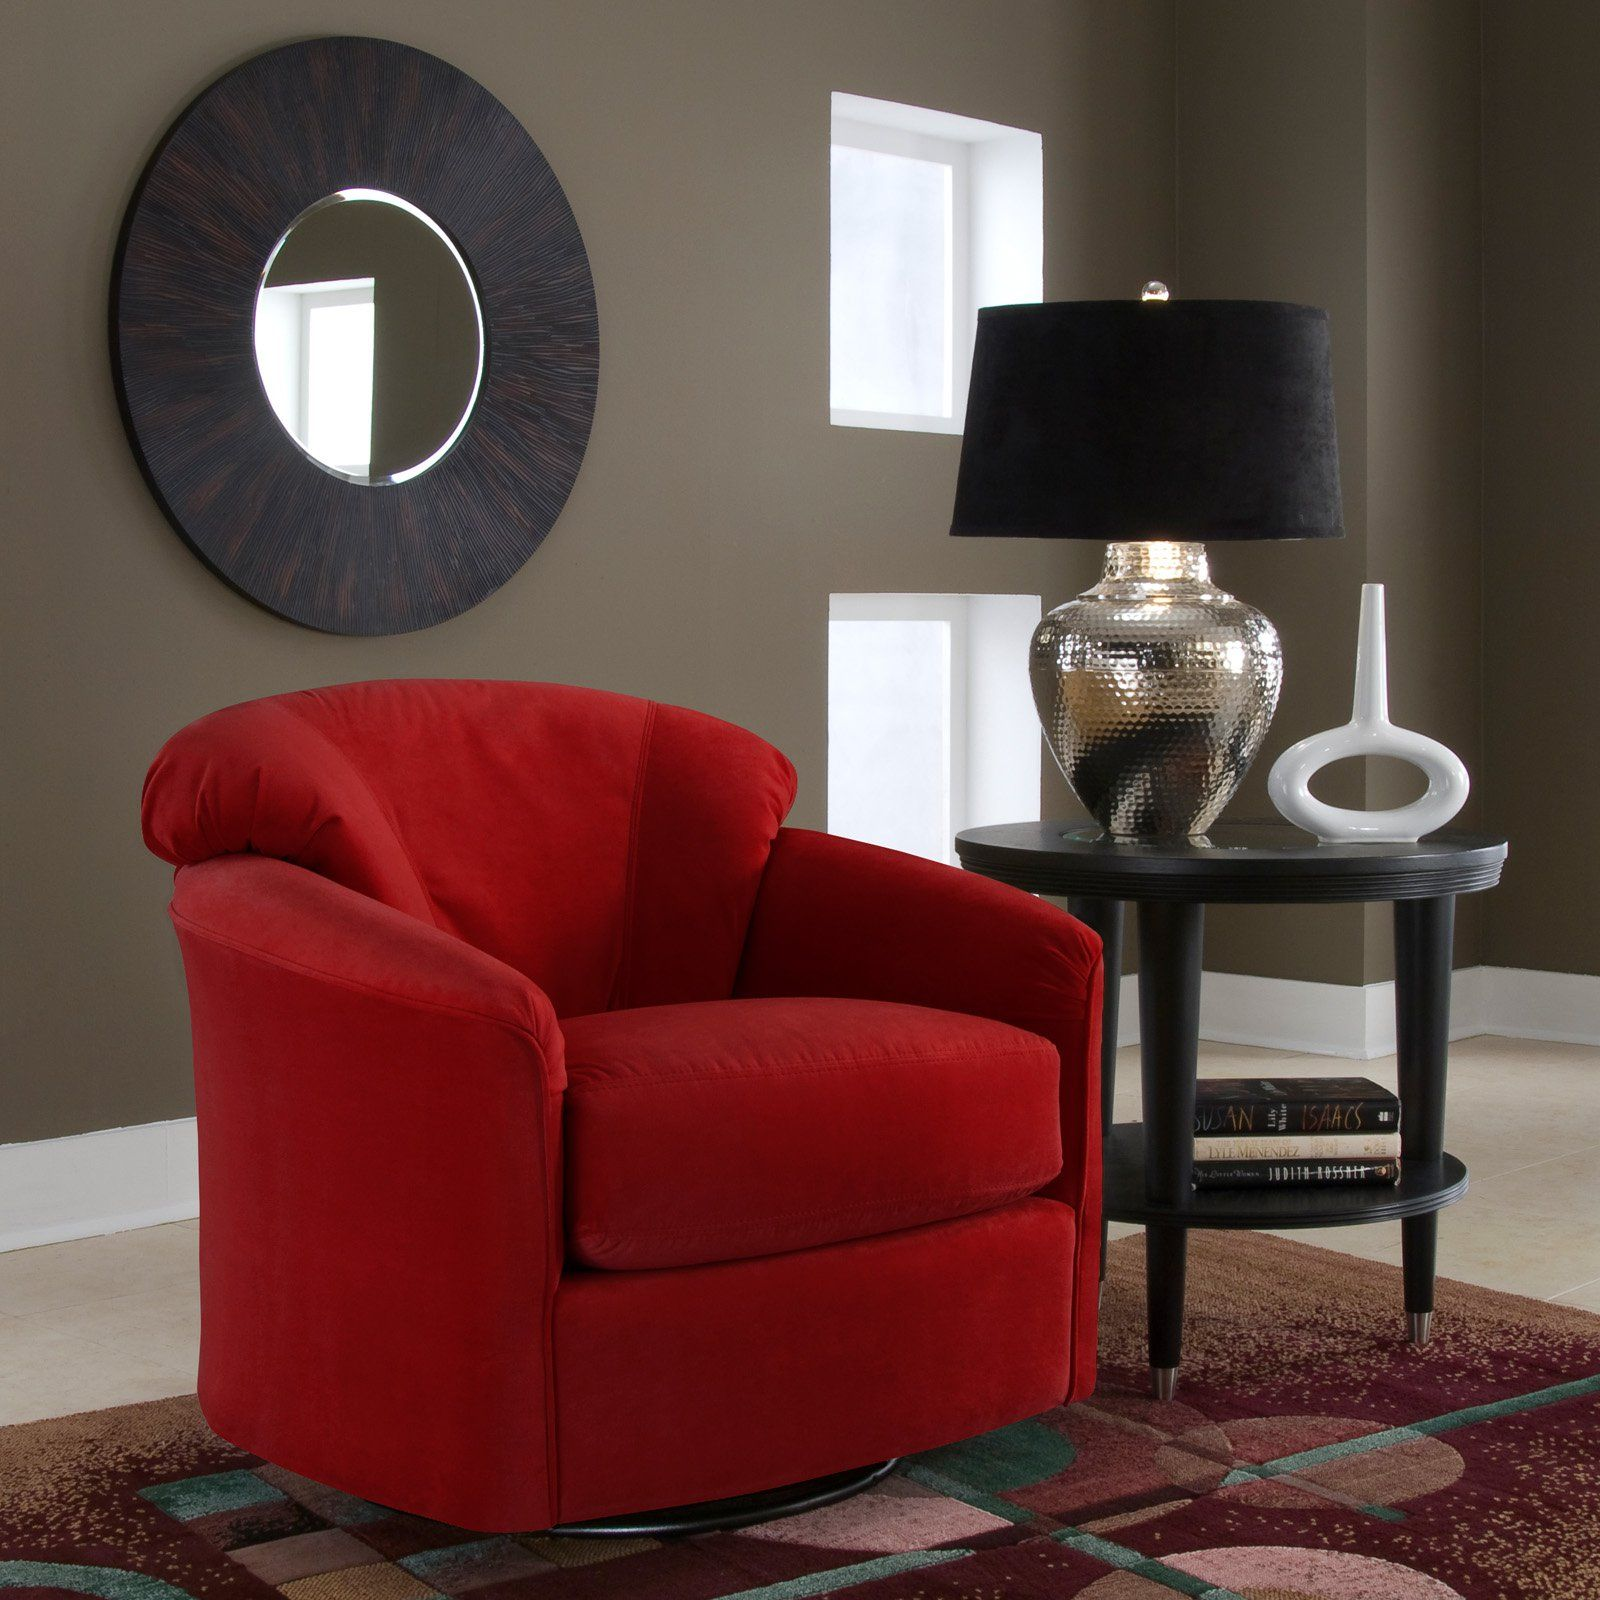 Amazing Room · LOVE THIS SWIVEL CHAIR!